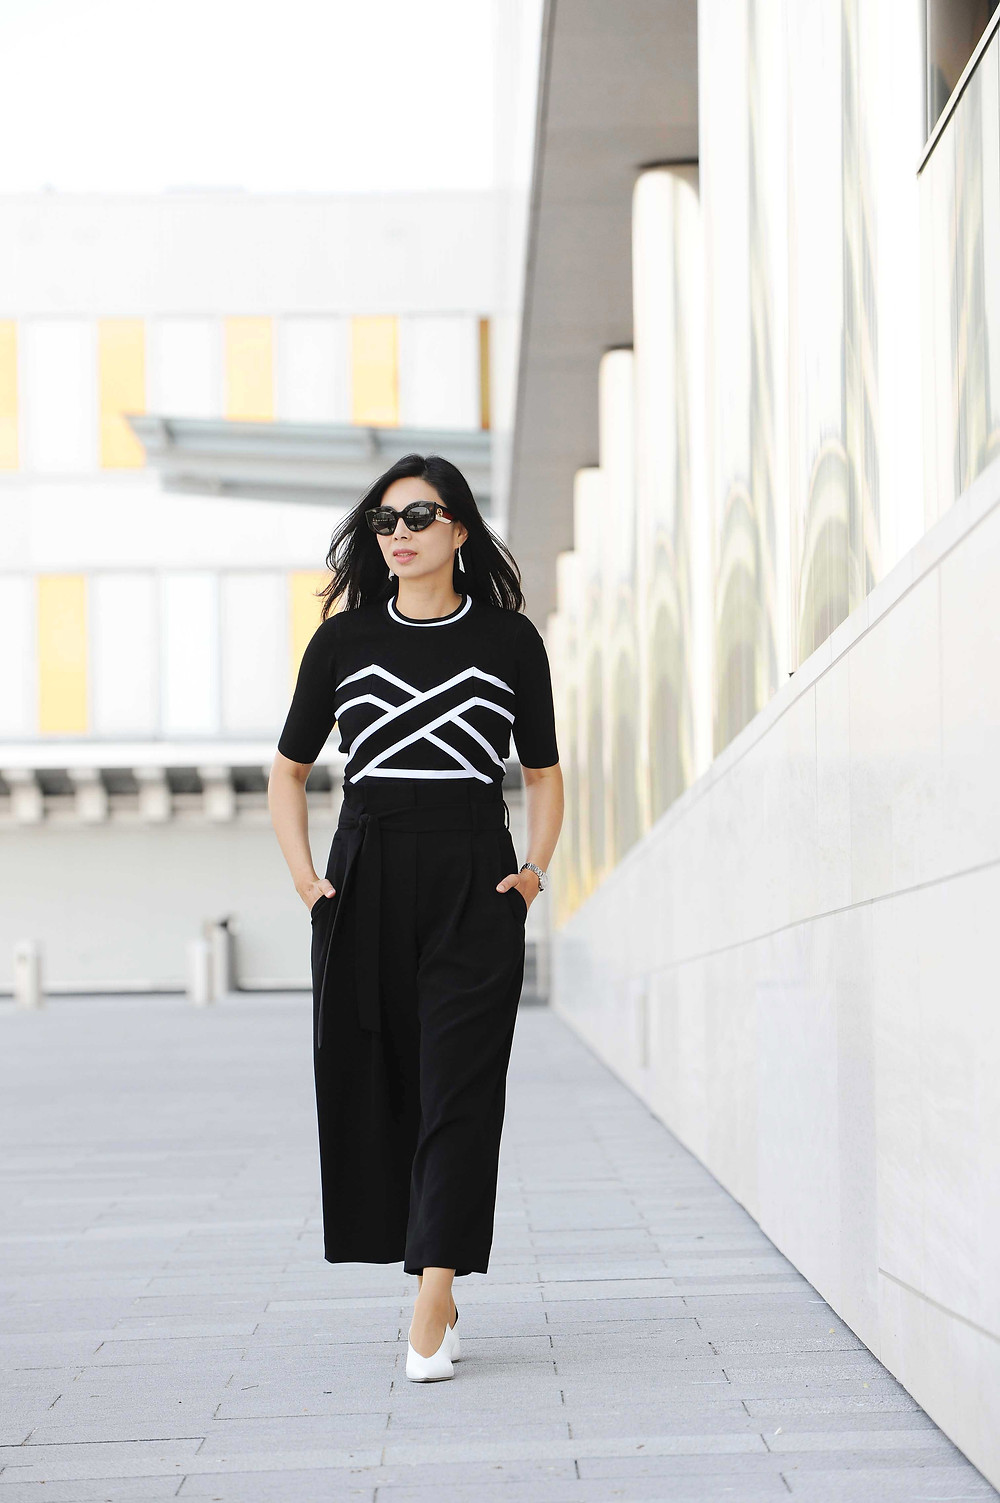 Black and white business casual outfit for women